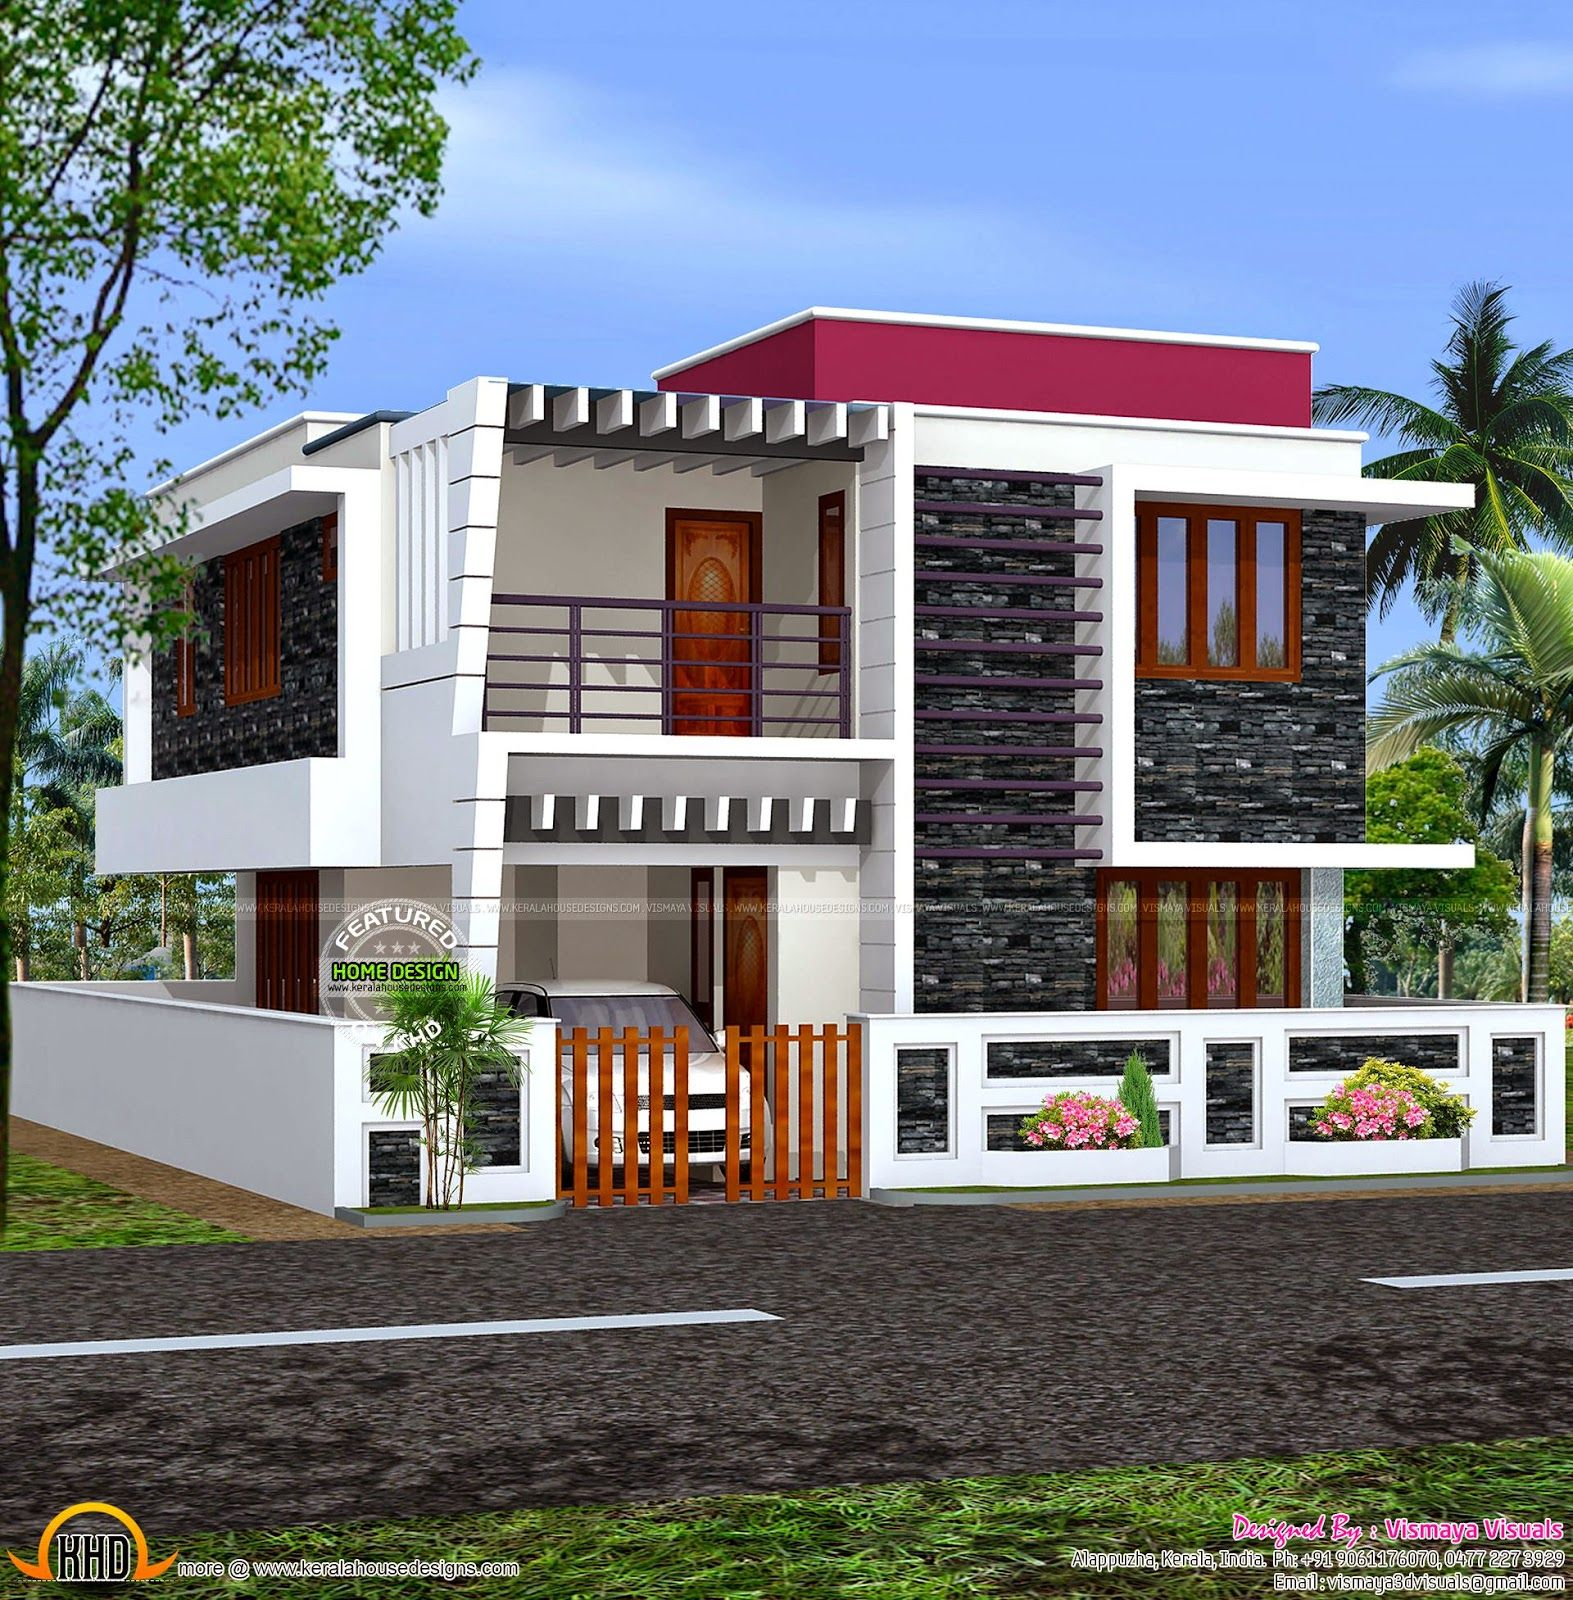 The 8 Best Home Design Software Of 2019: House Portico Designs Kerala Design